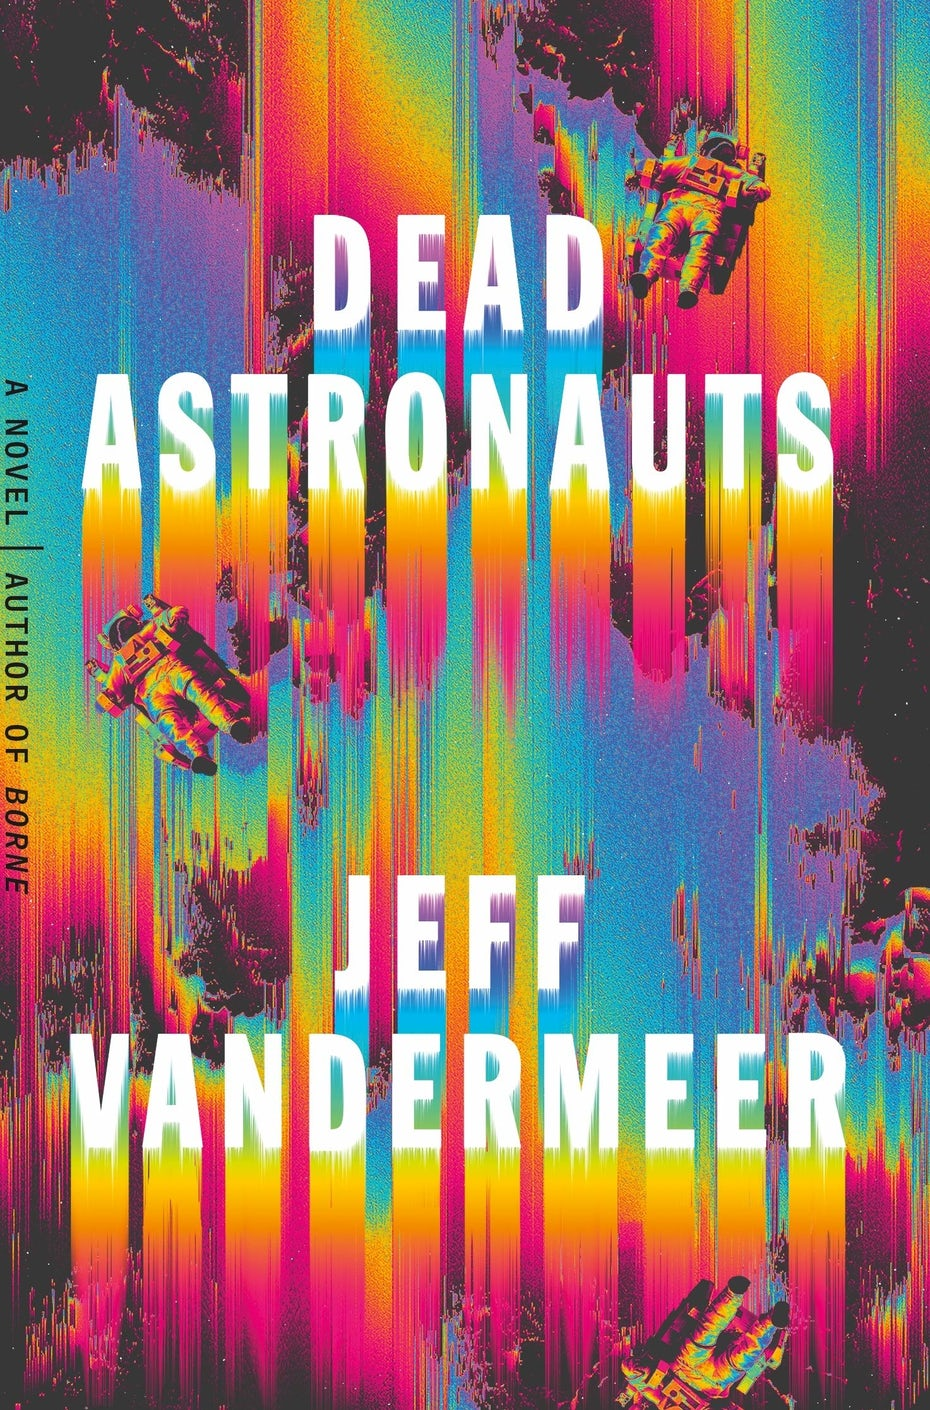 book cover trends 2020 example with psychedelic, bright rainbow effect